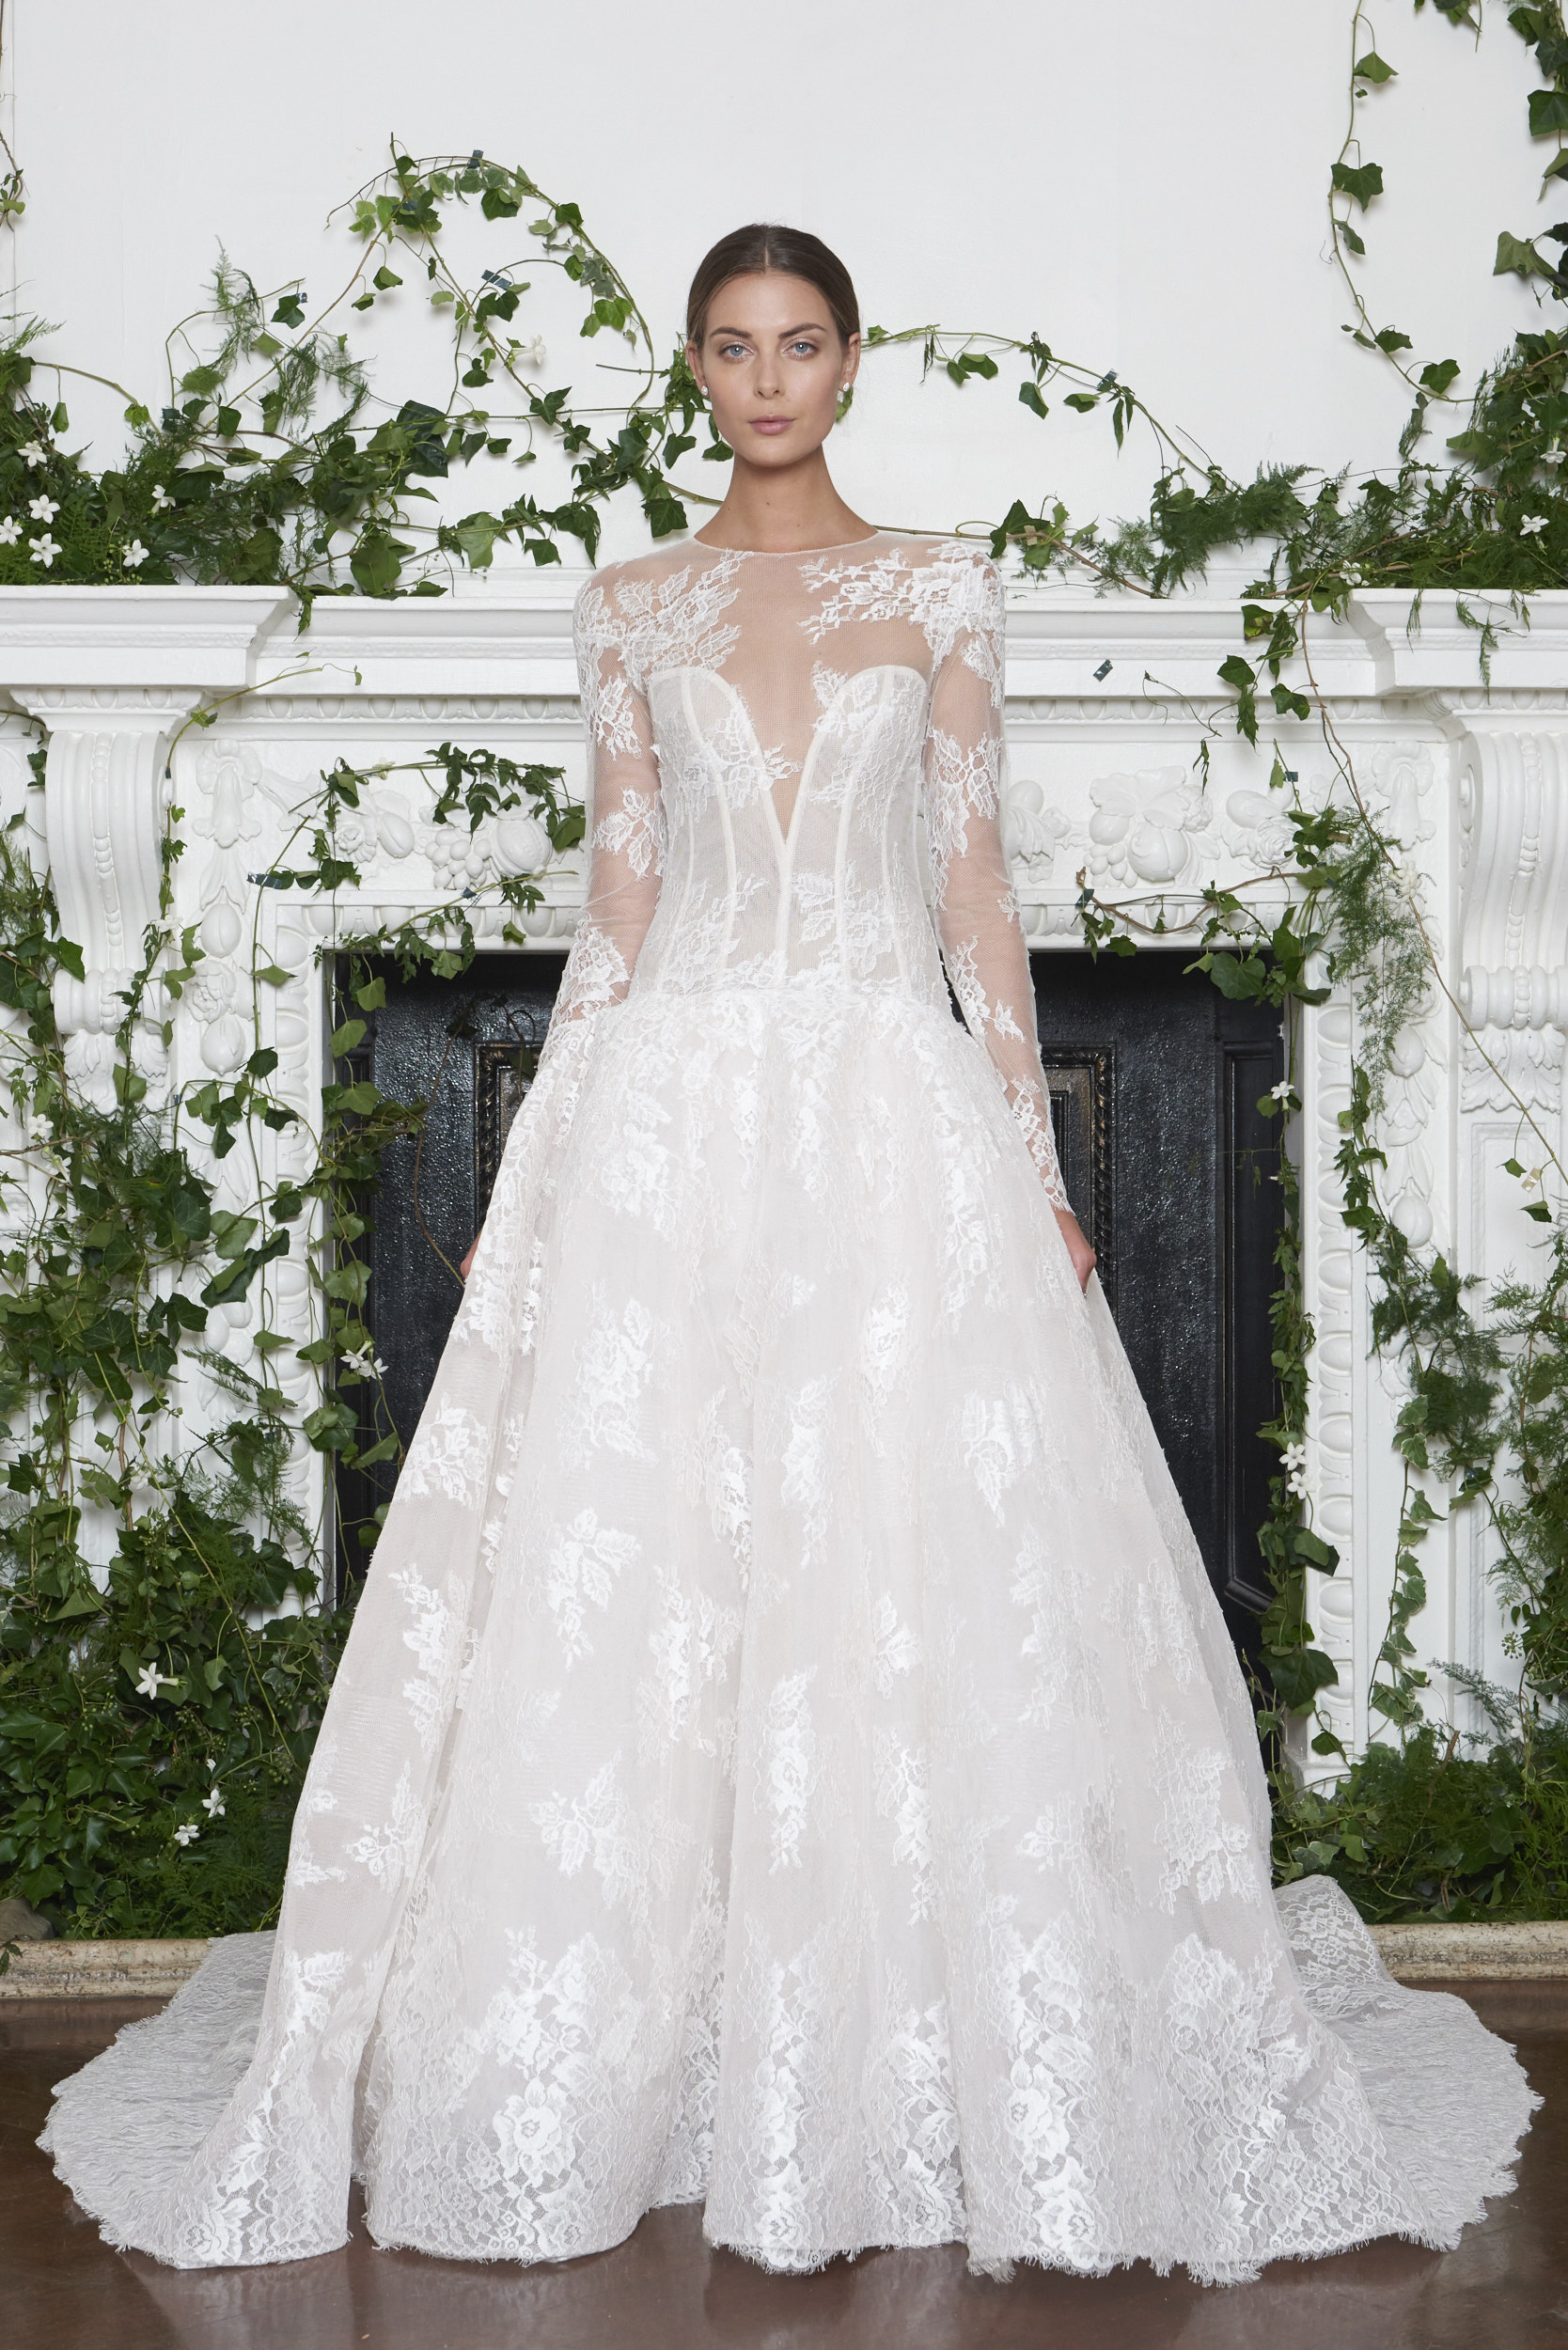 Monique Lhuillier Fall 2018 Wedding Dress Collection Martha